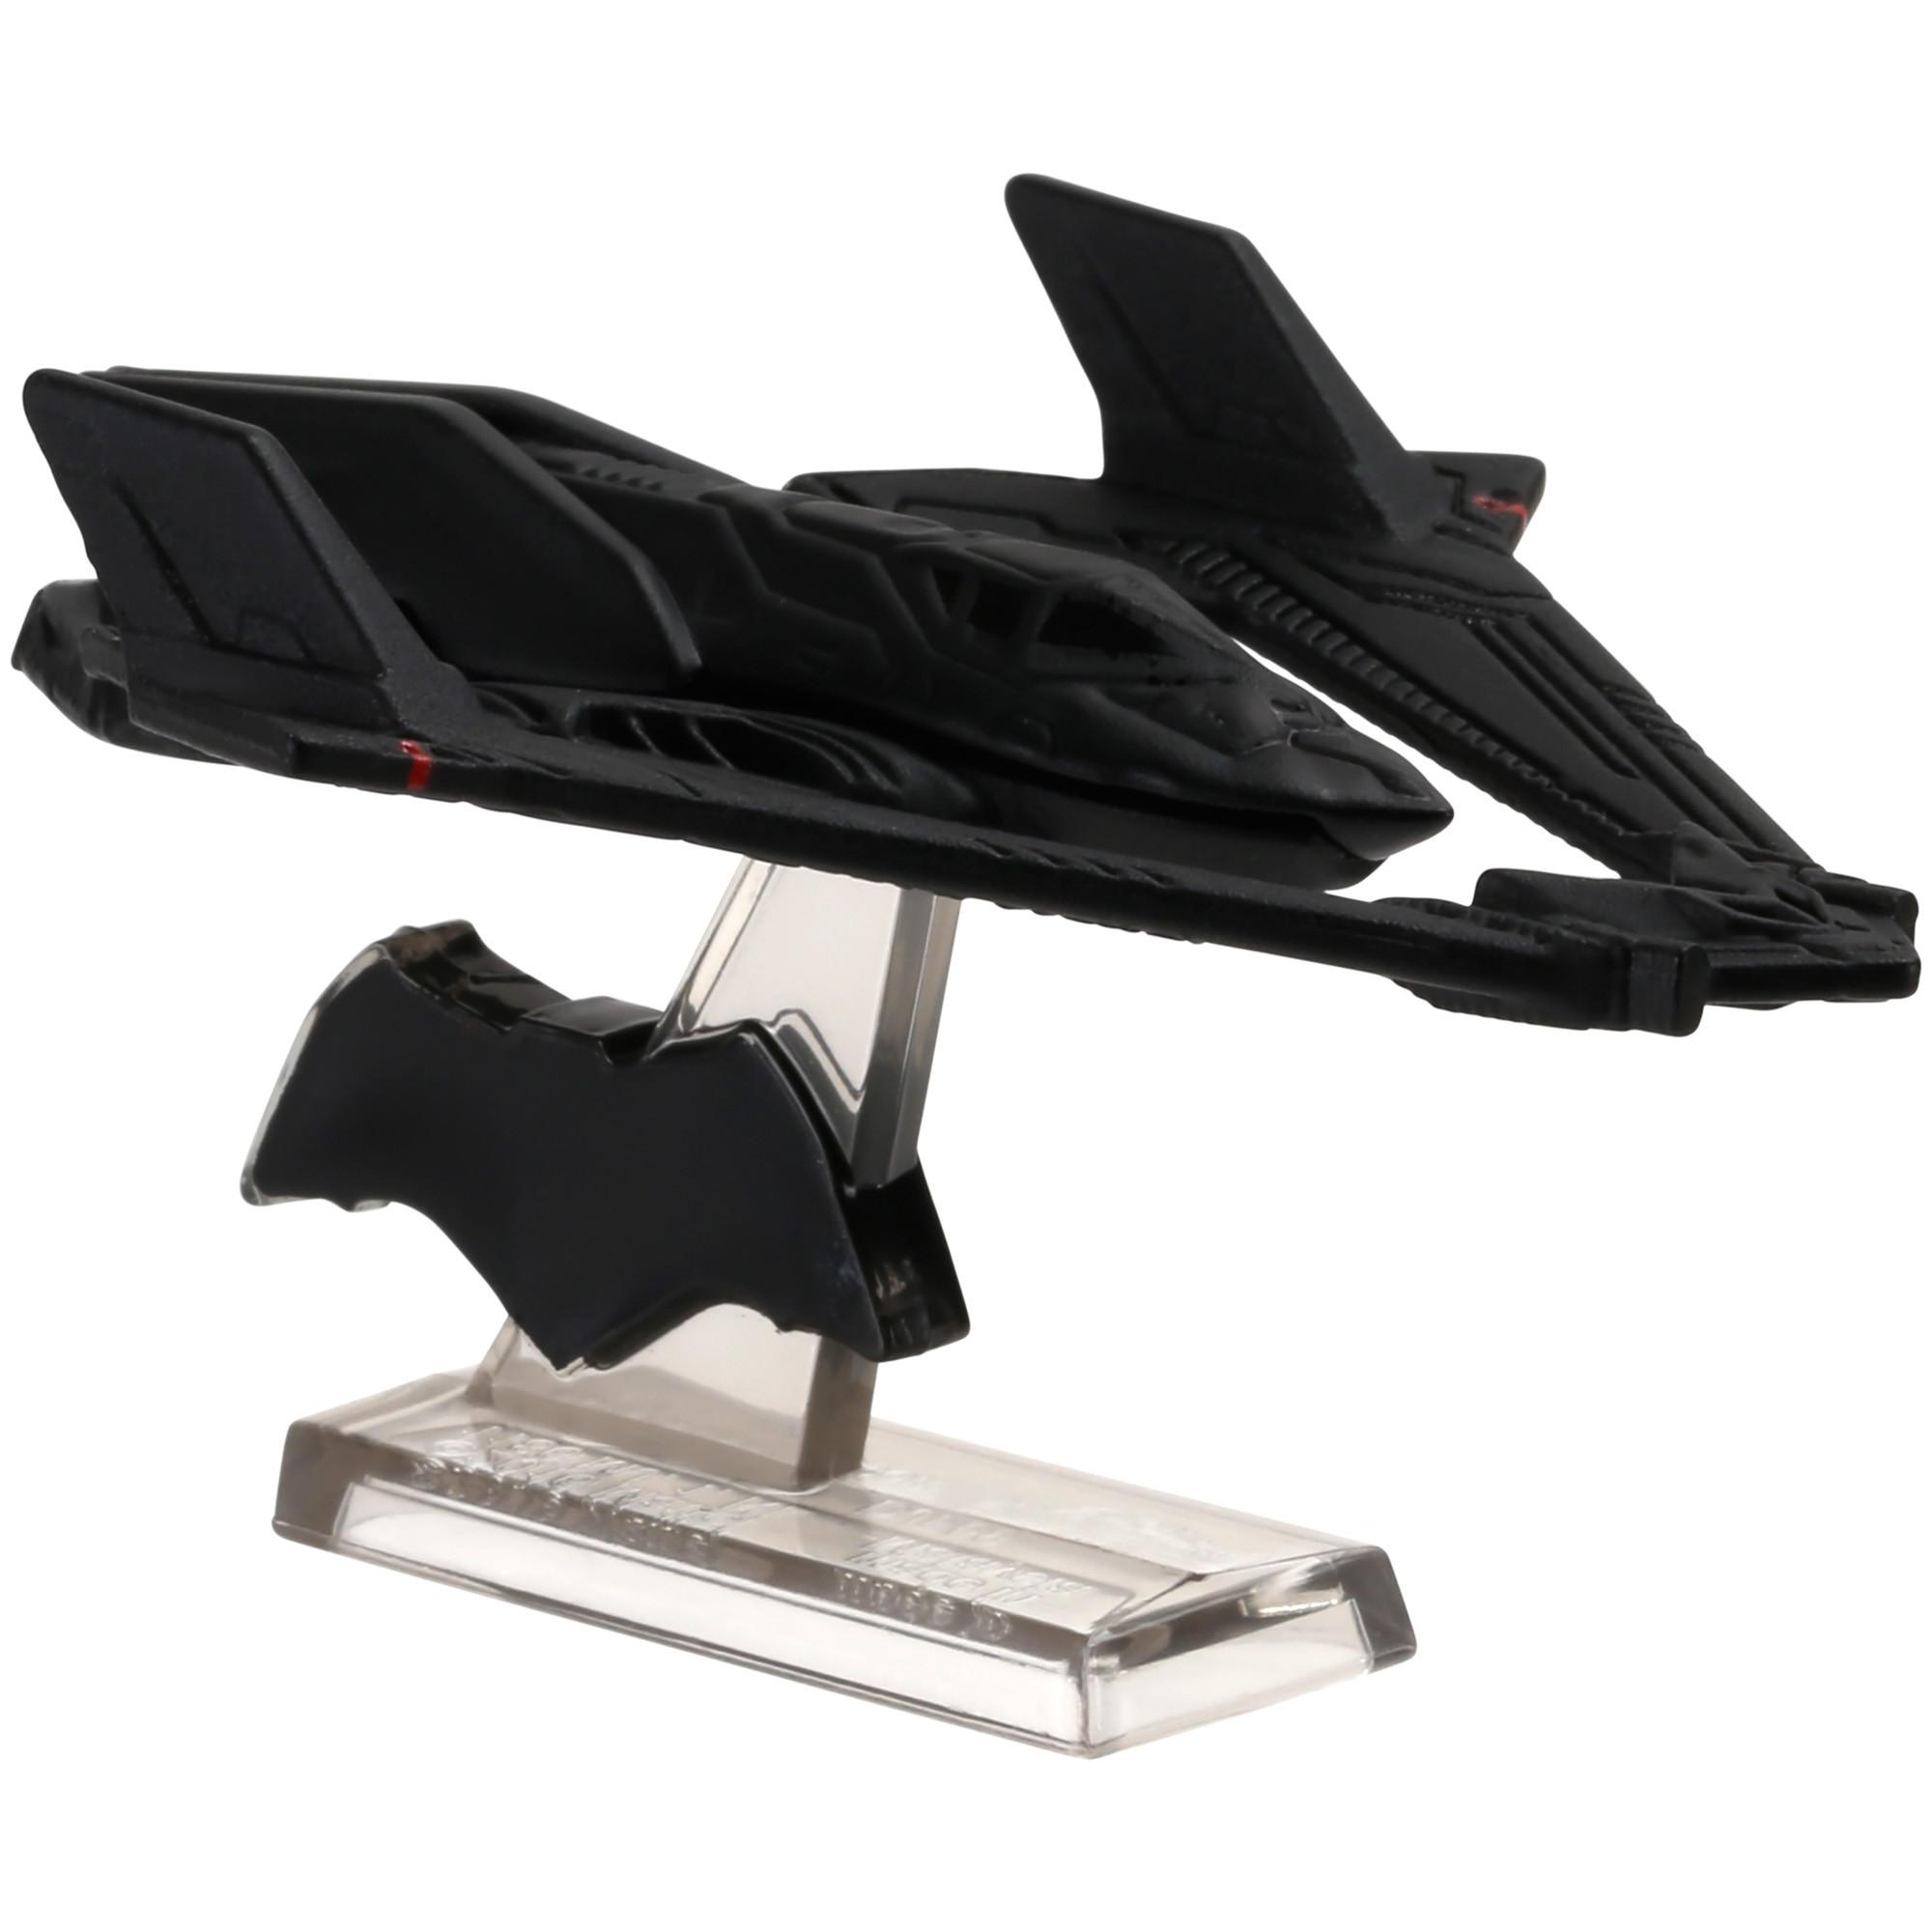 Hot Wheels Diecast 1:64 Scale Bat Wing Vehicle by Mattel